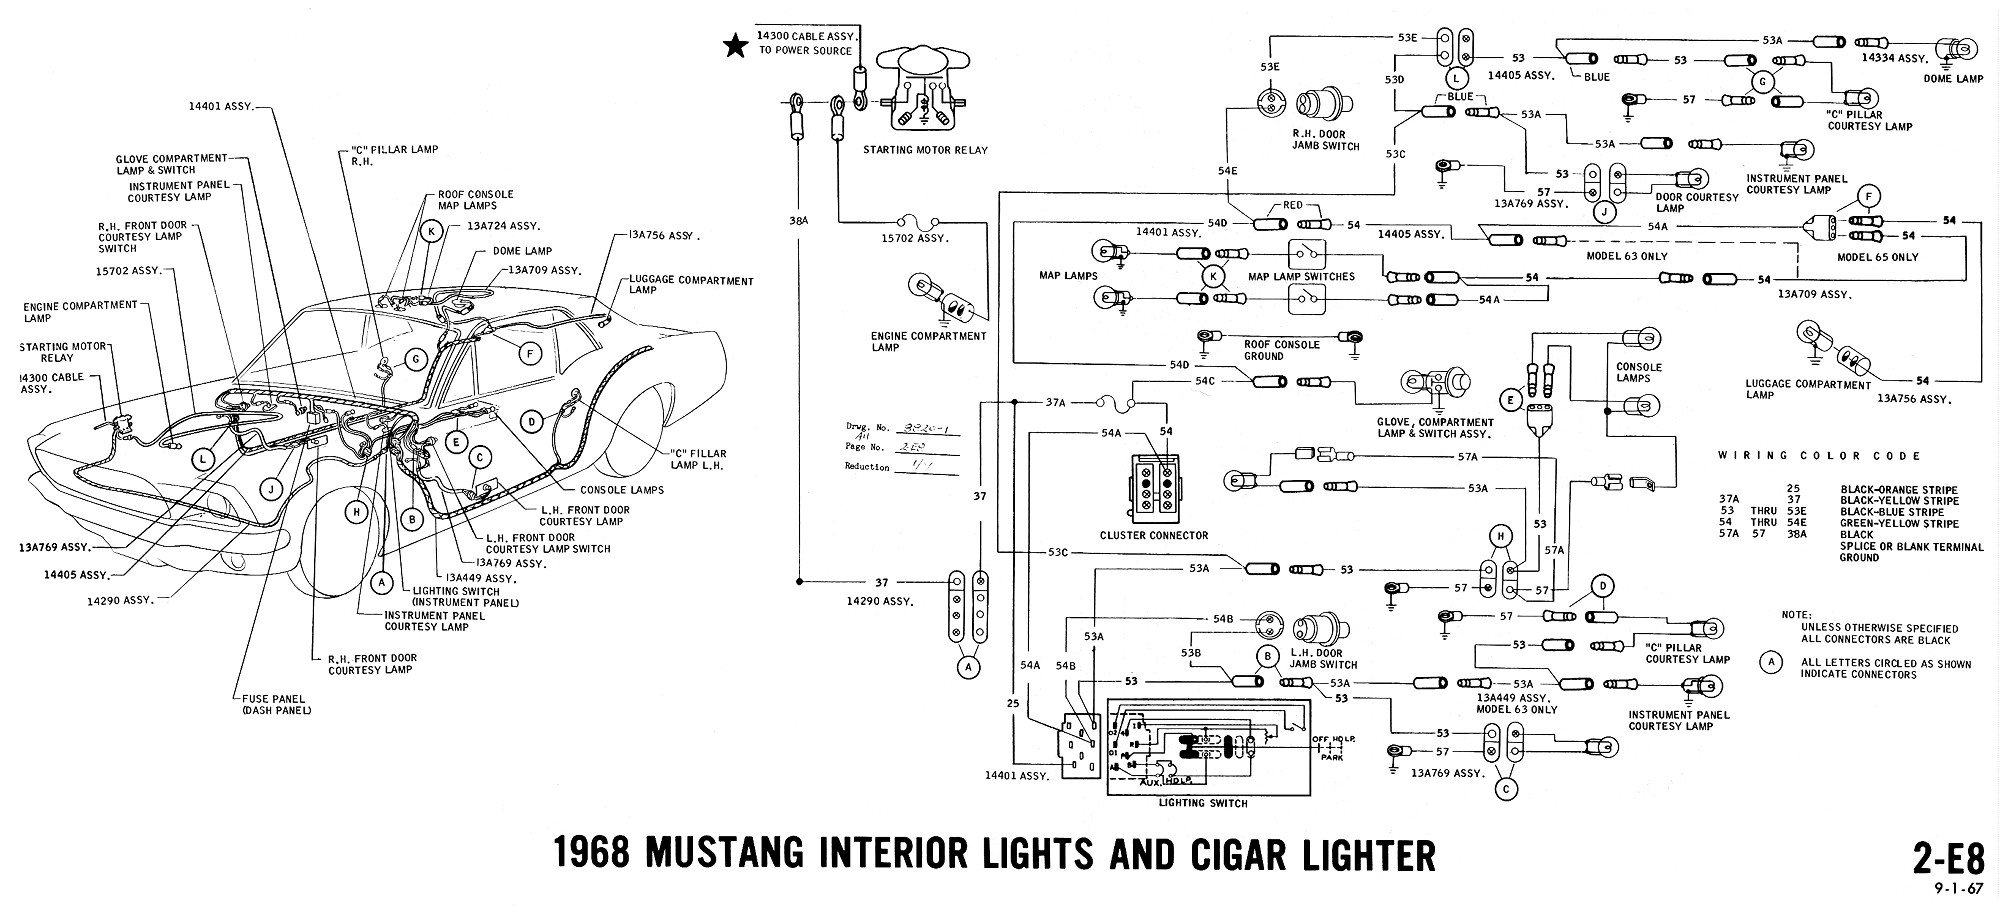 hight resolution of 1968 mustang wiring harness wiring diagram world 1968 mustang wiring harness diagram free 1968 mustang wiring harness diagram